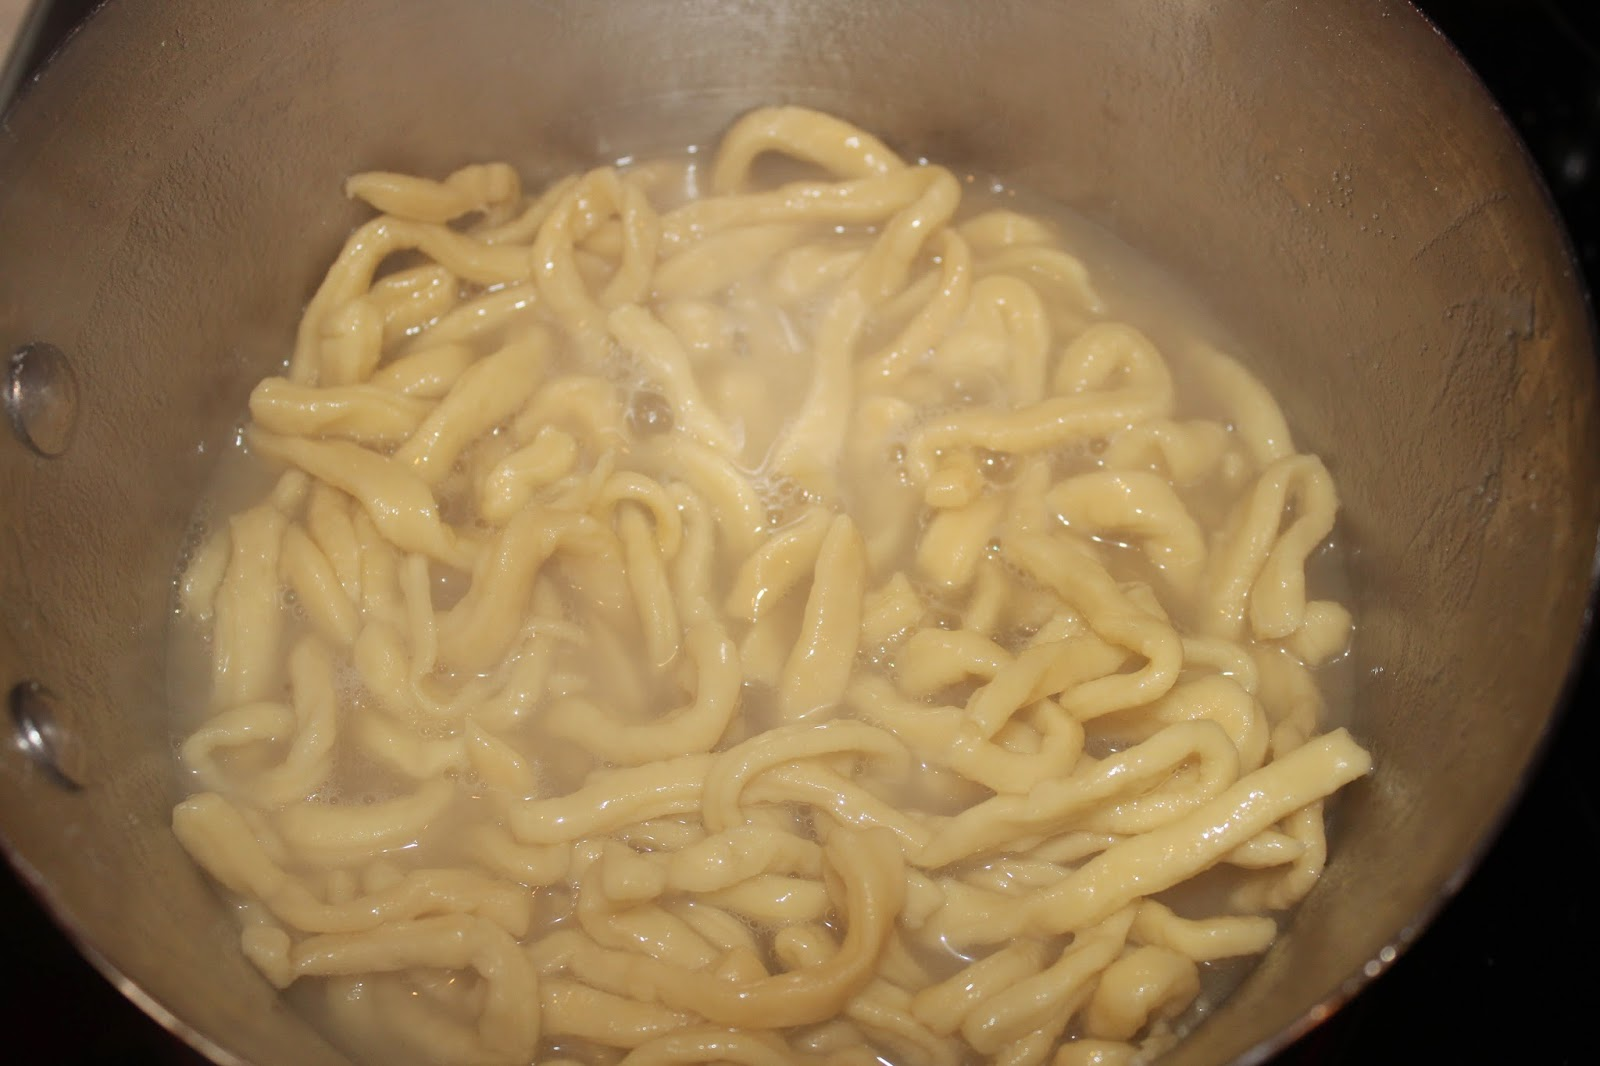 IMG 4703 - Homemade Noodles